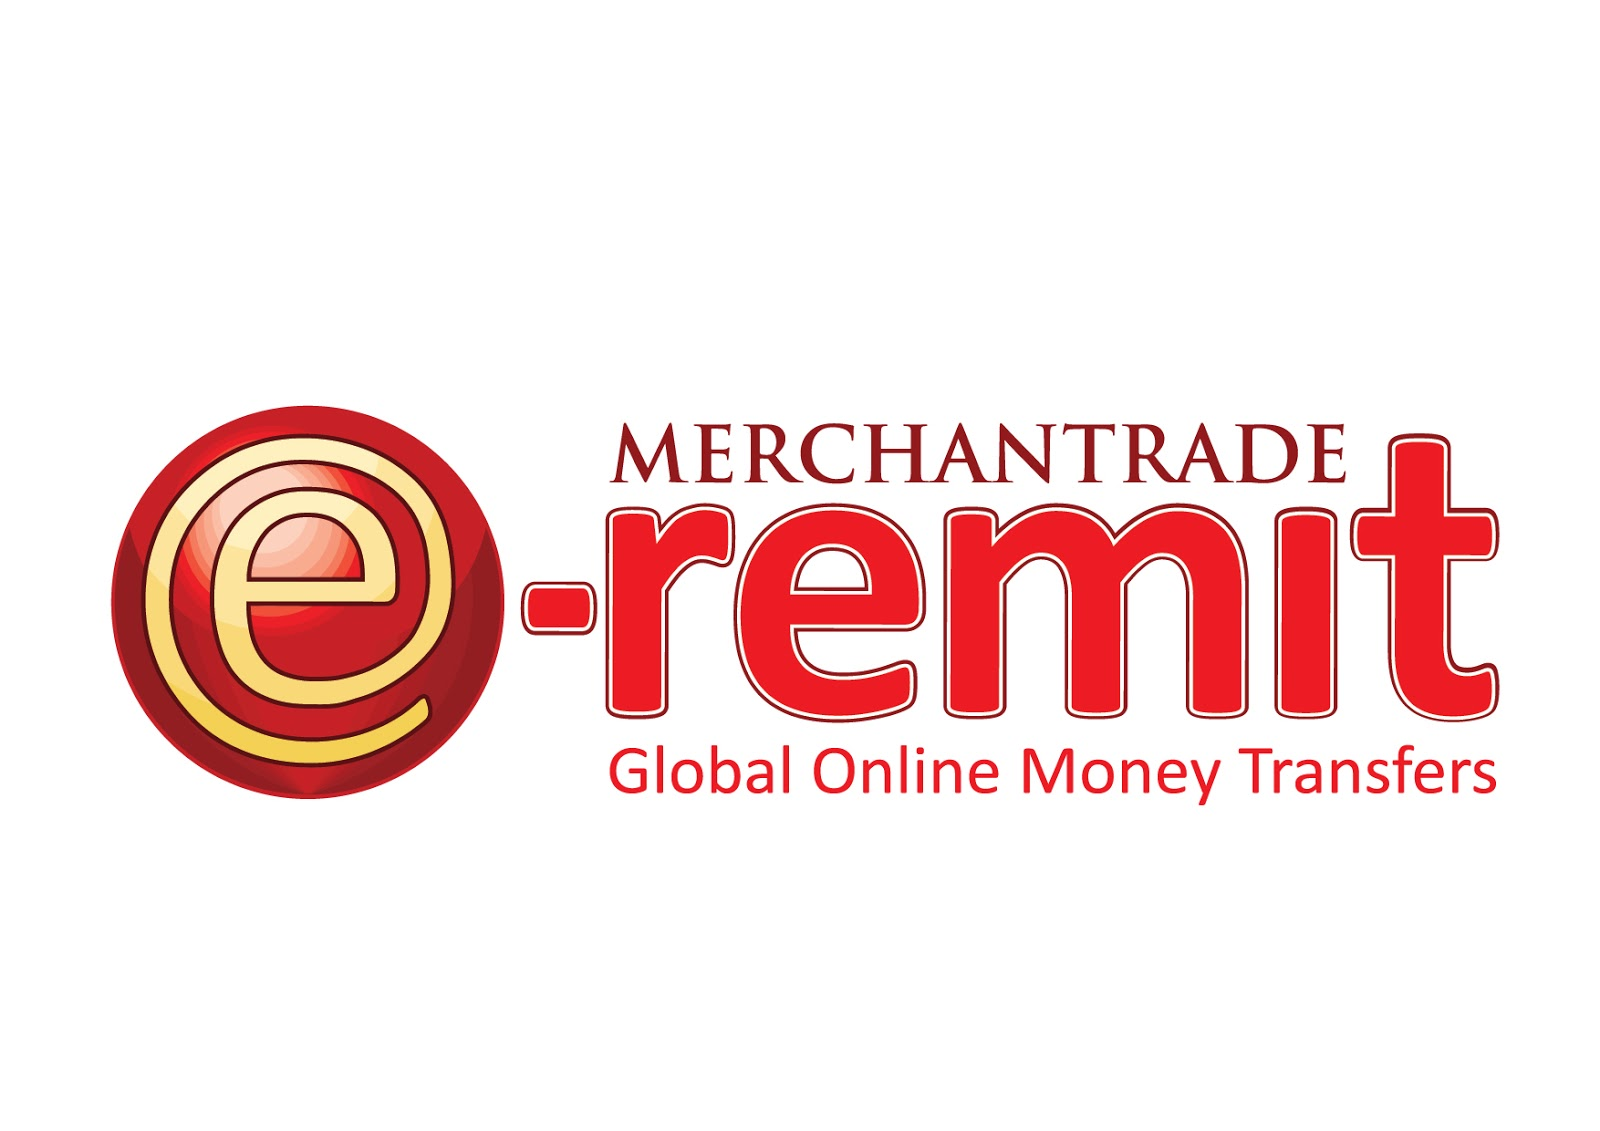 how to send money from india to philippines through moneygram